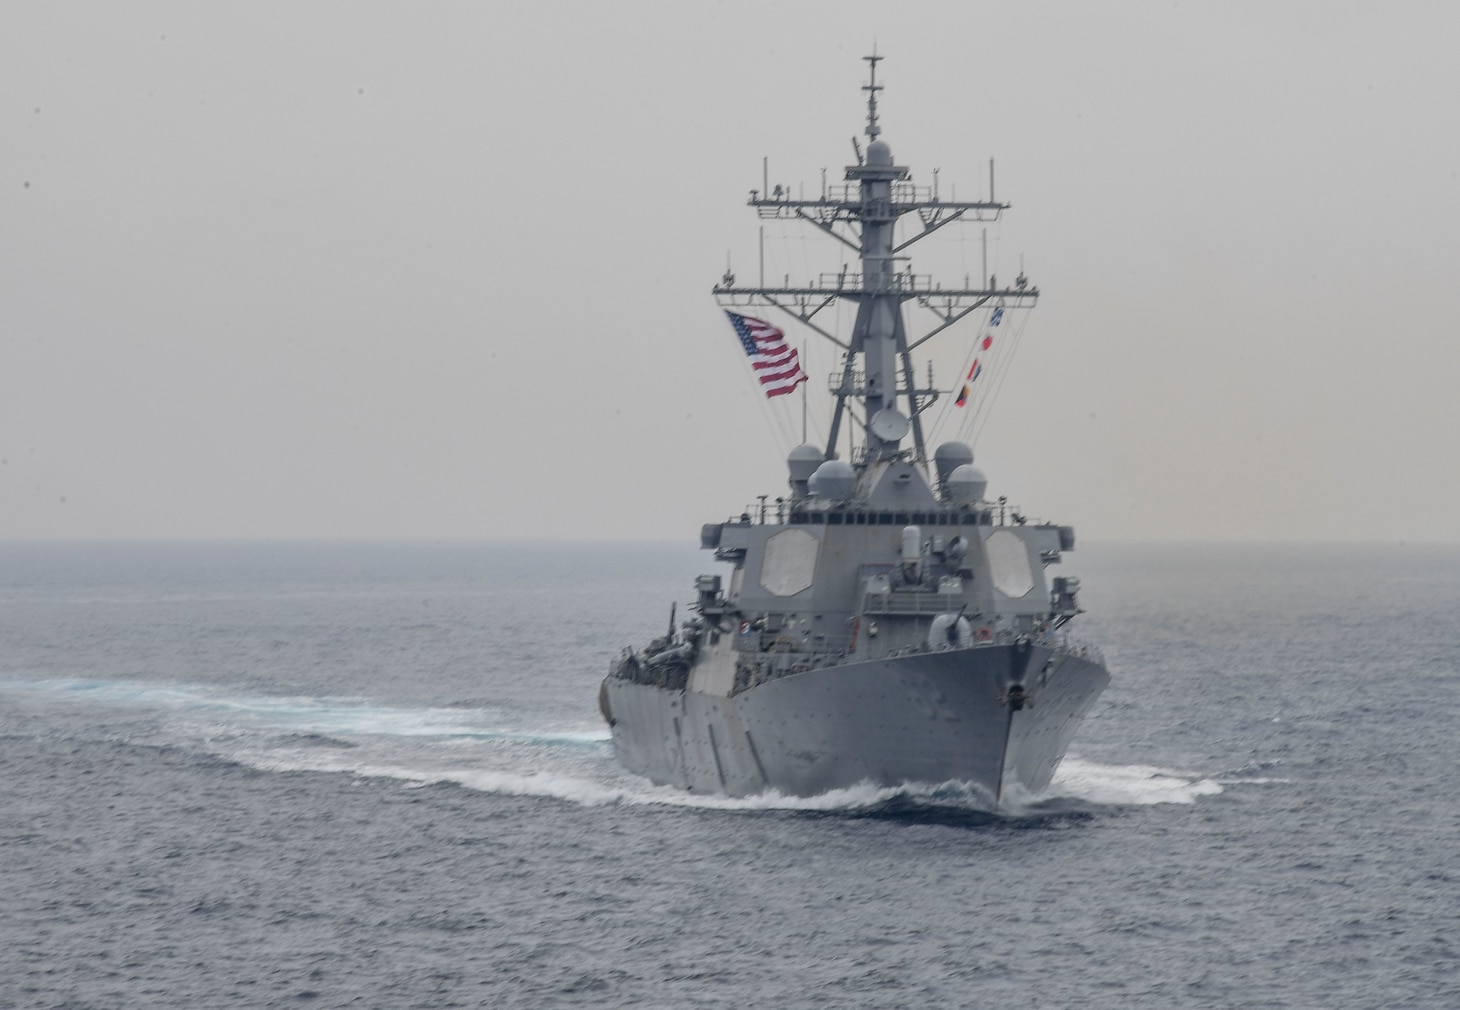 SEA OF JAPAN (June 1, 2017) The guided-missile destroyer USS Fitzgerald (DDG 62) sails in formation during a bilateral exercise between USS Carl Vinson and USS Ronald Reagan carrier strike groups and the Japanese Maritime Self-Defense Force (JMSDF). The Ronald Reagan and Carl Vinson Carrier Strike Groups conduct maritime training operations with Japan Maritime Self-Defense Force ships, JS Hyuga (DDH 181) and JS Ashigara (DDG178). JMSDF and U.S. Navy forces routinely train together to improve interoperability and readiness to provide stability and security for the Indo-Asia Pacific region. (U.S. Navy photo by Mass Communication Specialist 3rd Class Kelsey L. Adams/Released)